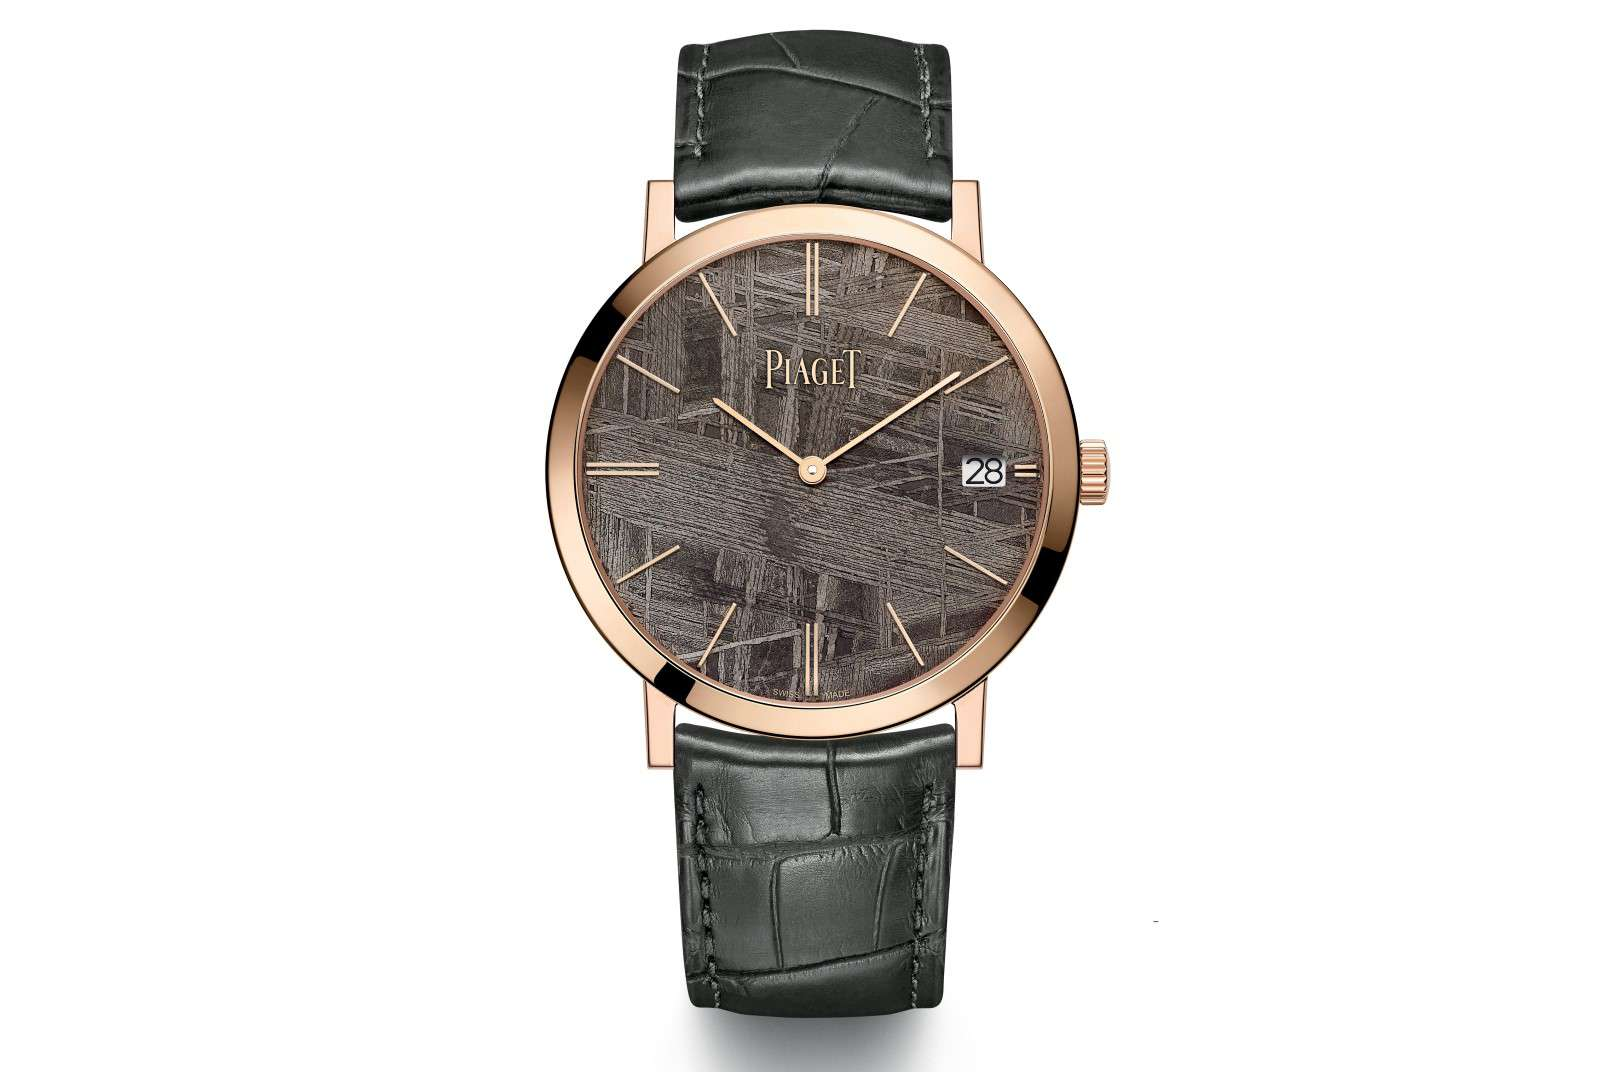 Piaget Altiplano G0A44051 - SIHH 2019